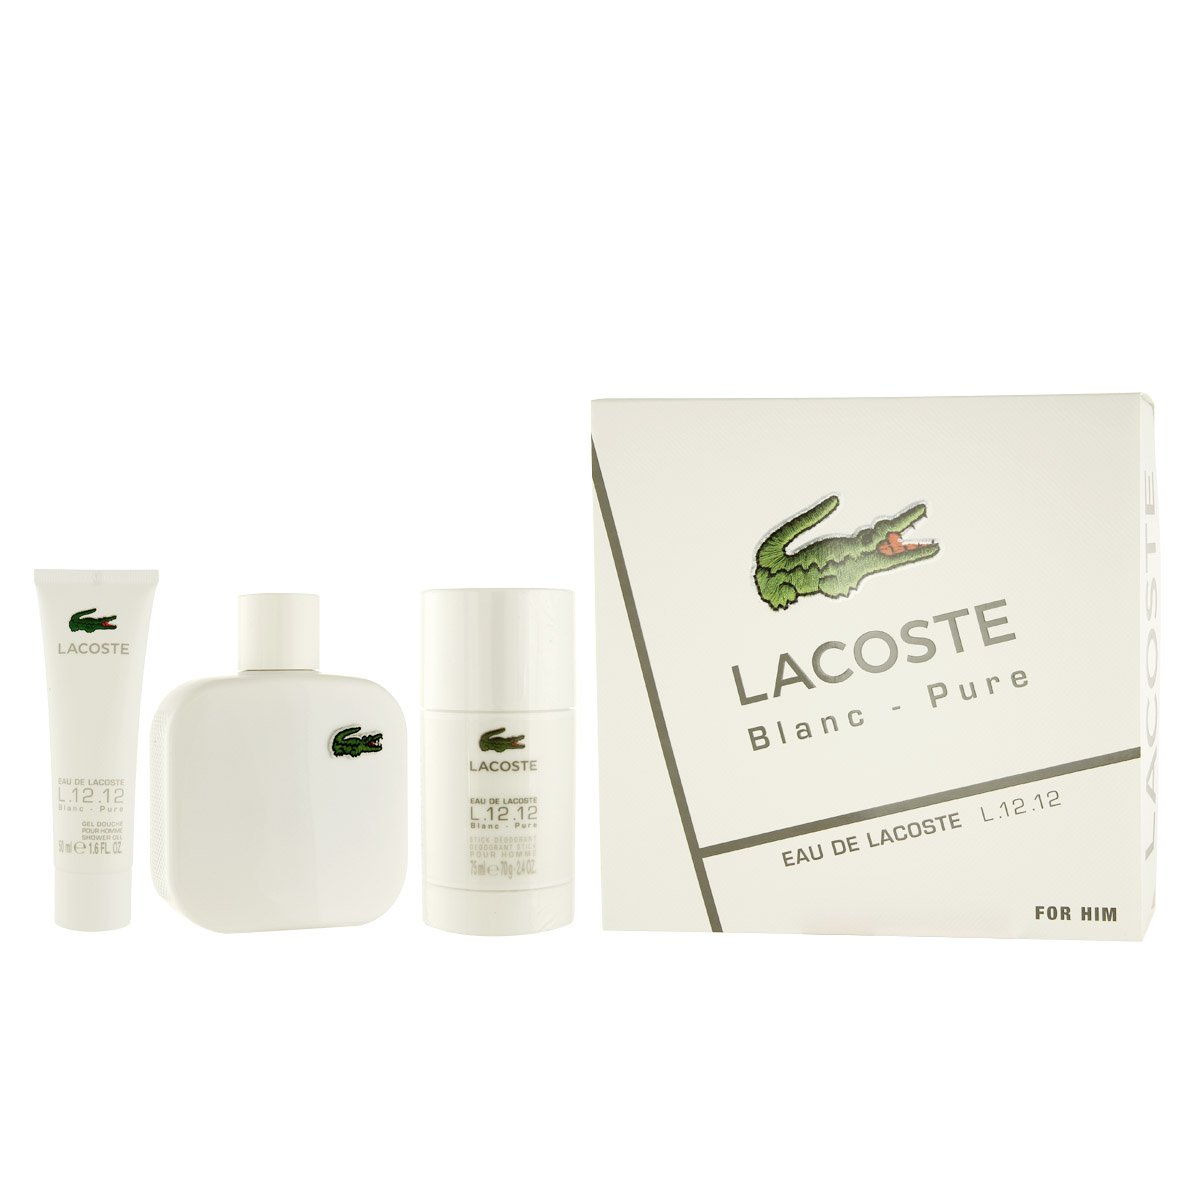 Blanc - Lacoste l 12 12 100ml espray colonia+ 50ml gel de ducha + 75ml